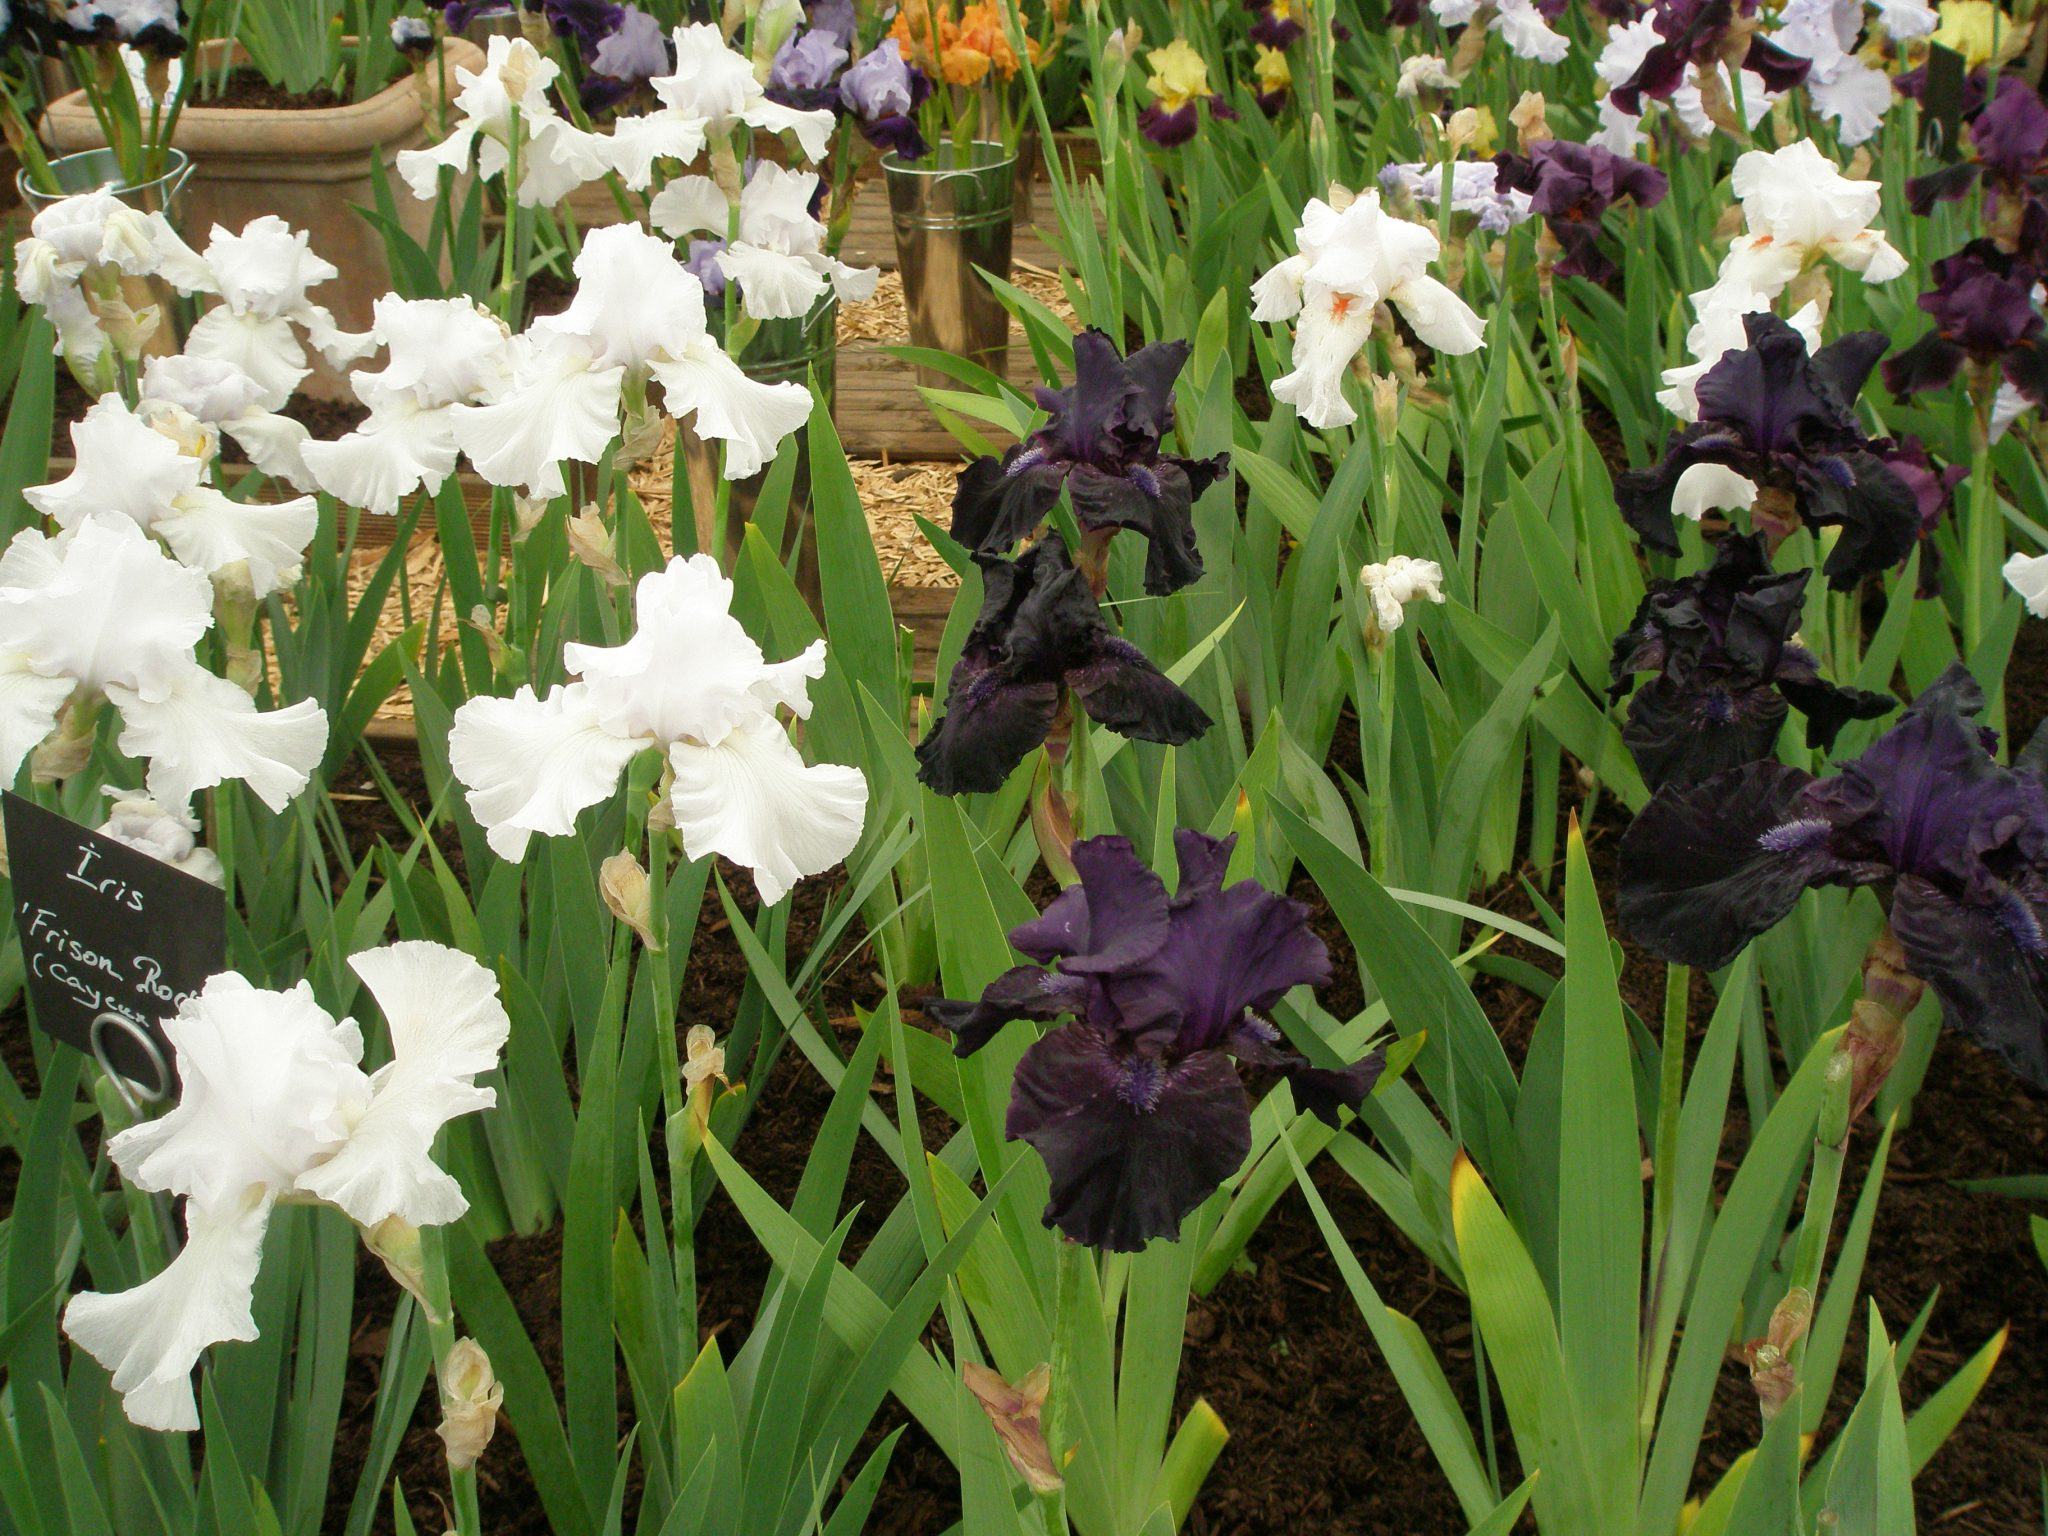 That's more like it....a calming sea of Iris.